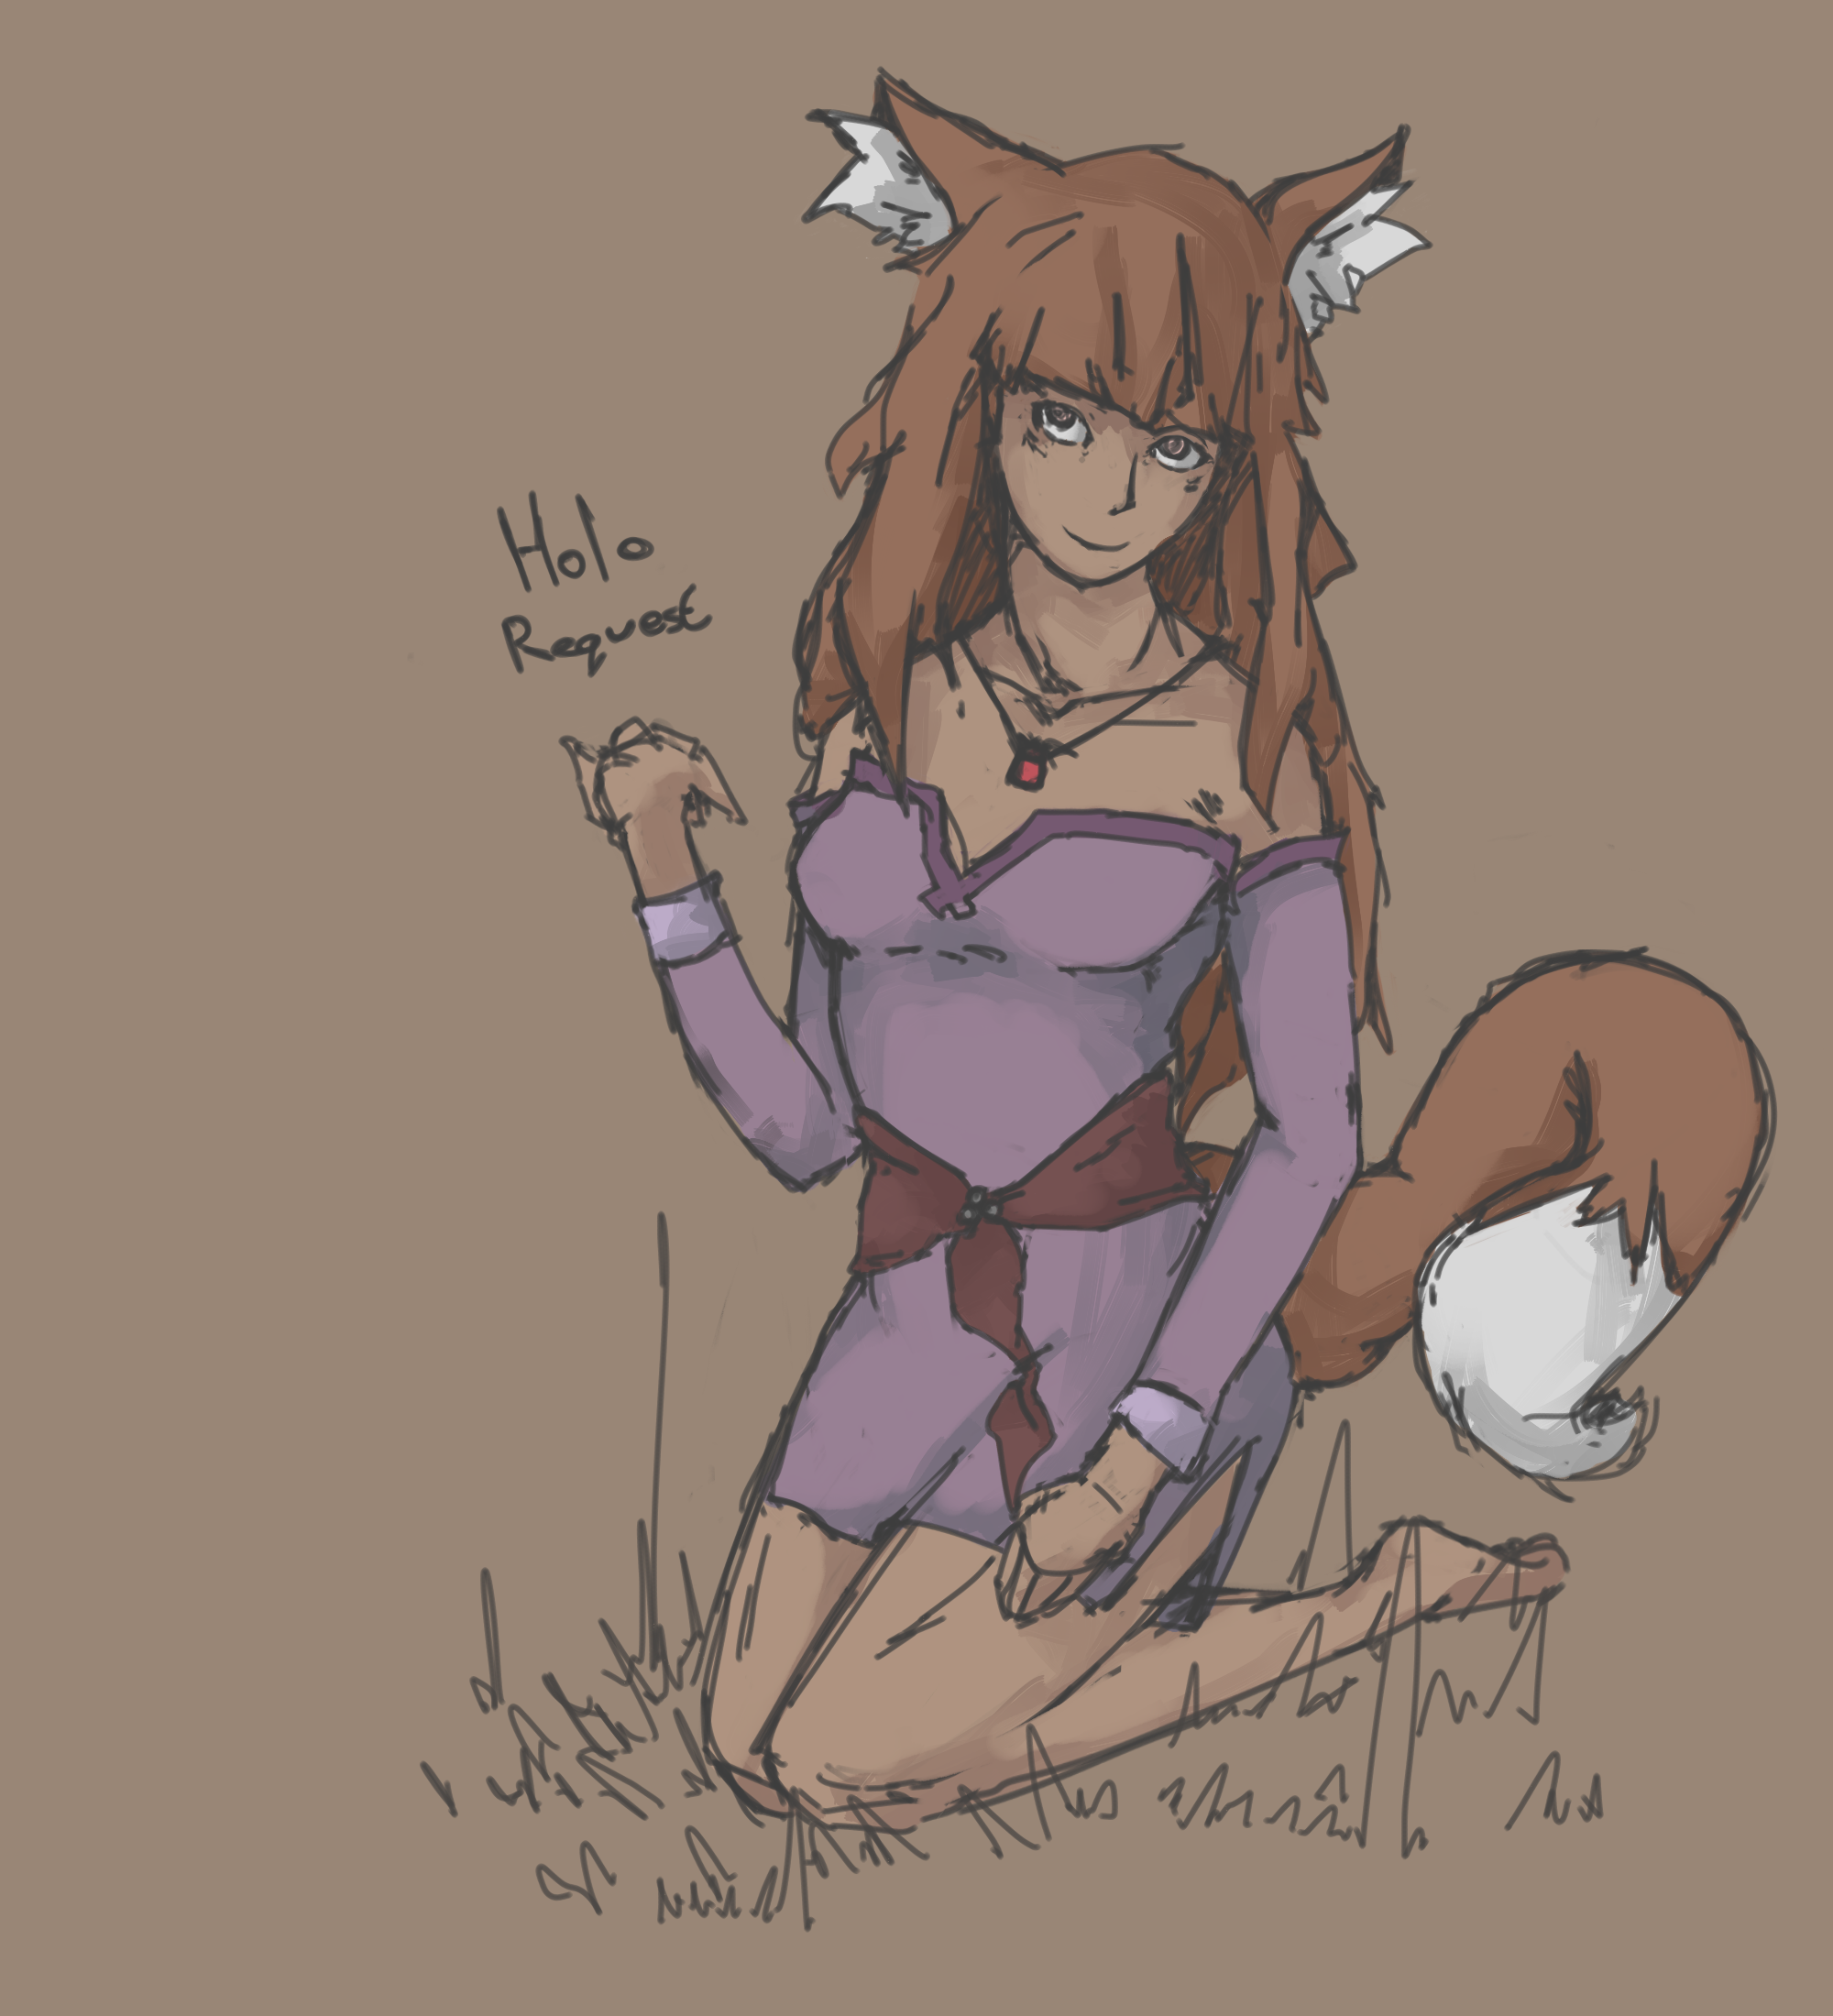 Spice and Wolf - Holo Request